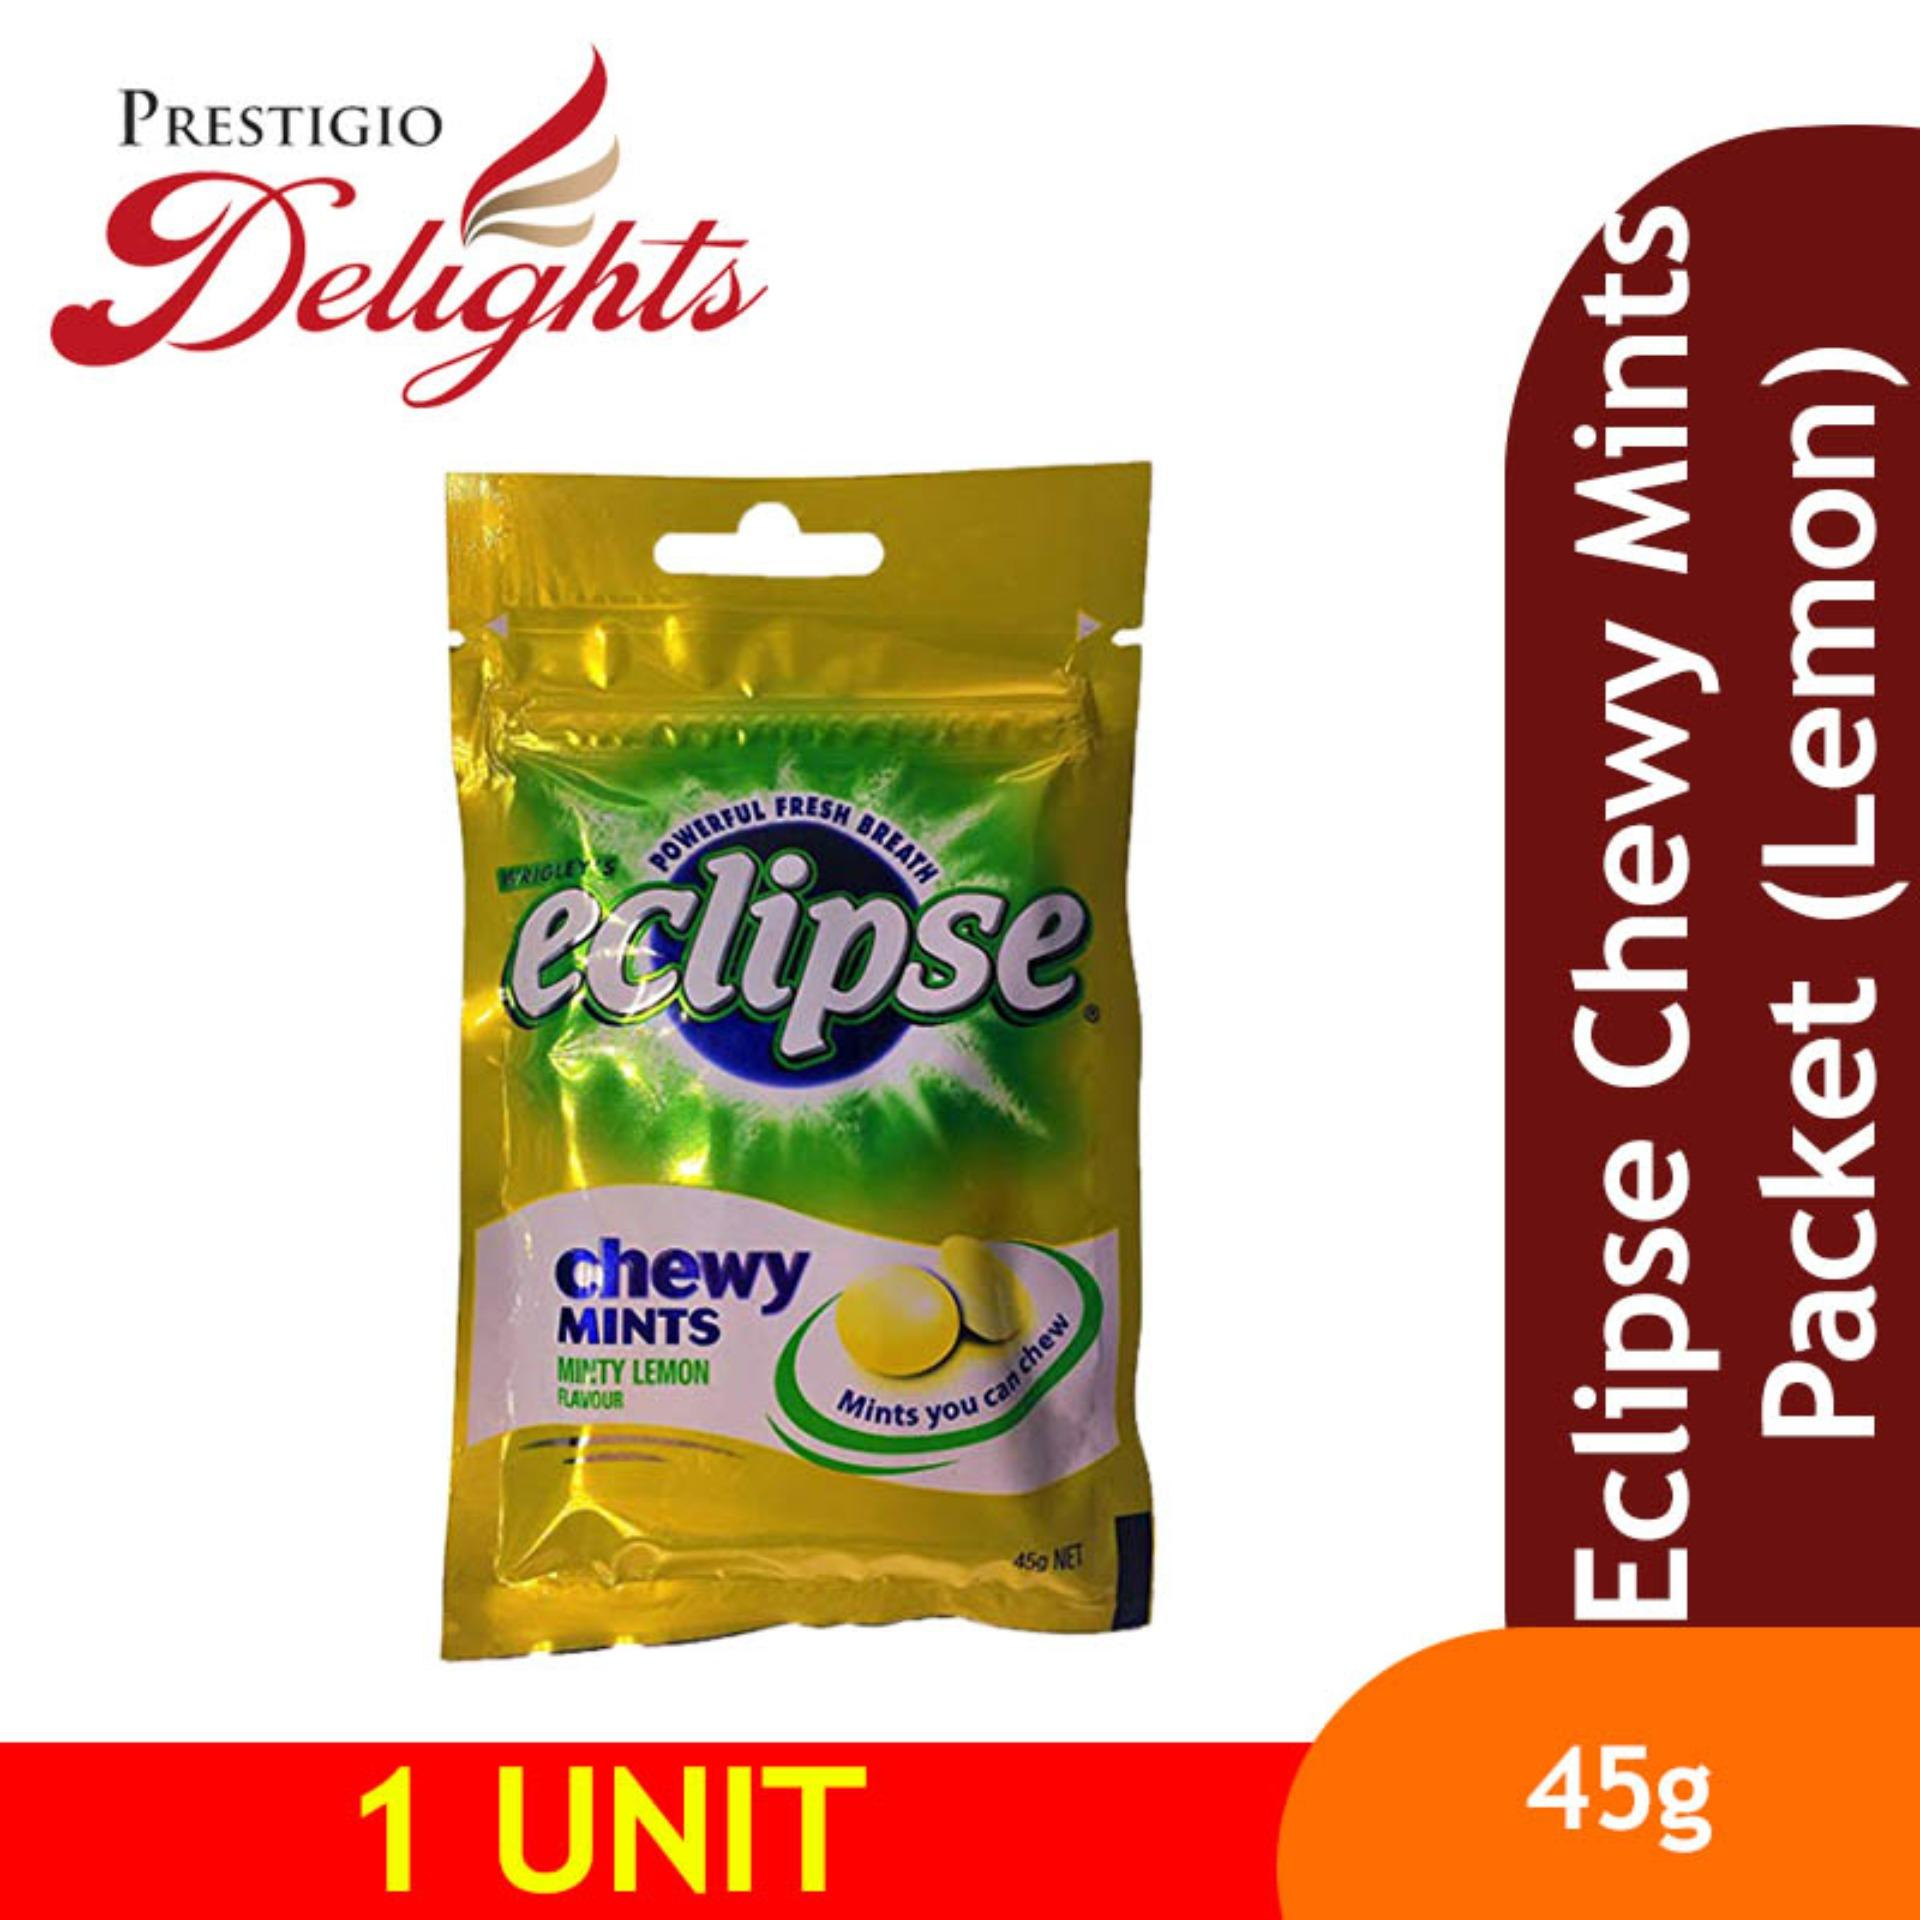 Eclipse Chewy Mints Packet (lemon) By Prestigio Delights.